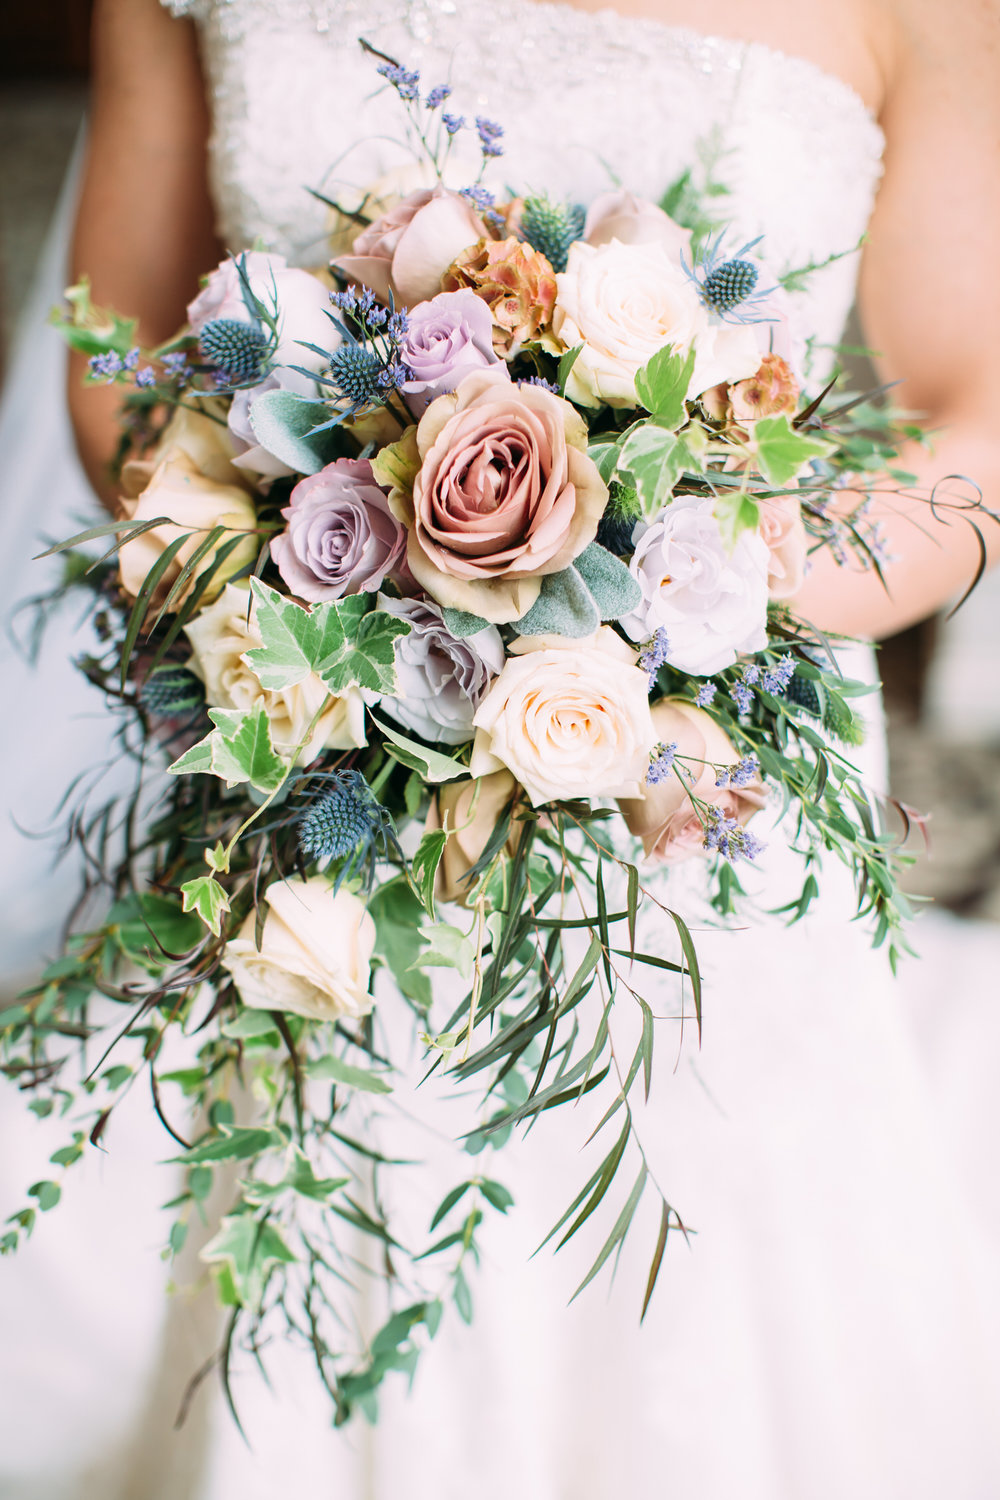 Wedding Bouquet. Chicago wedding photographer